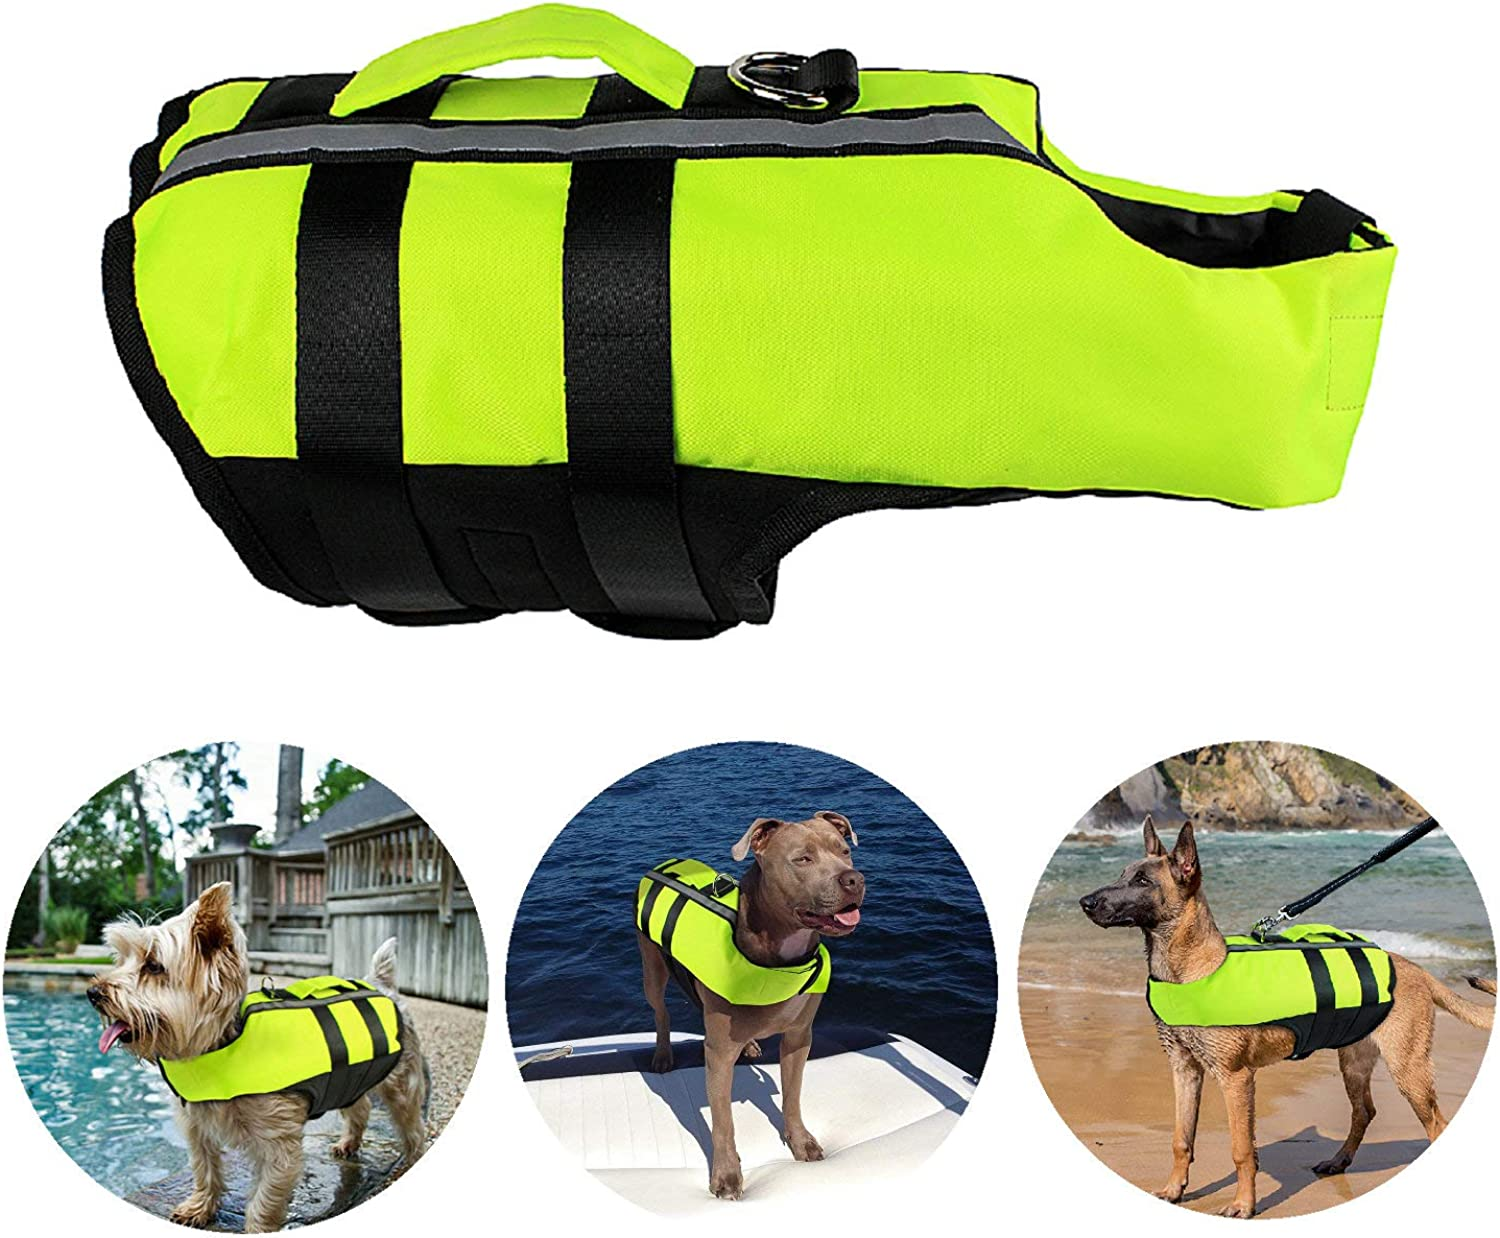 Petvins Dog Life Jacket Inflatable Pet Life Preserver Adjustable Air Sac Swiming Coat Safety Vest Fluorescent Green Small